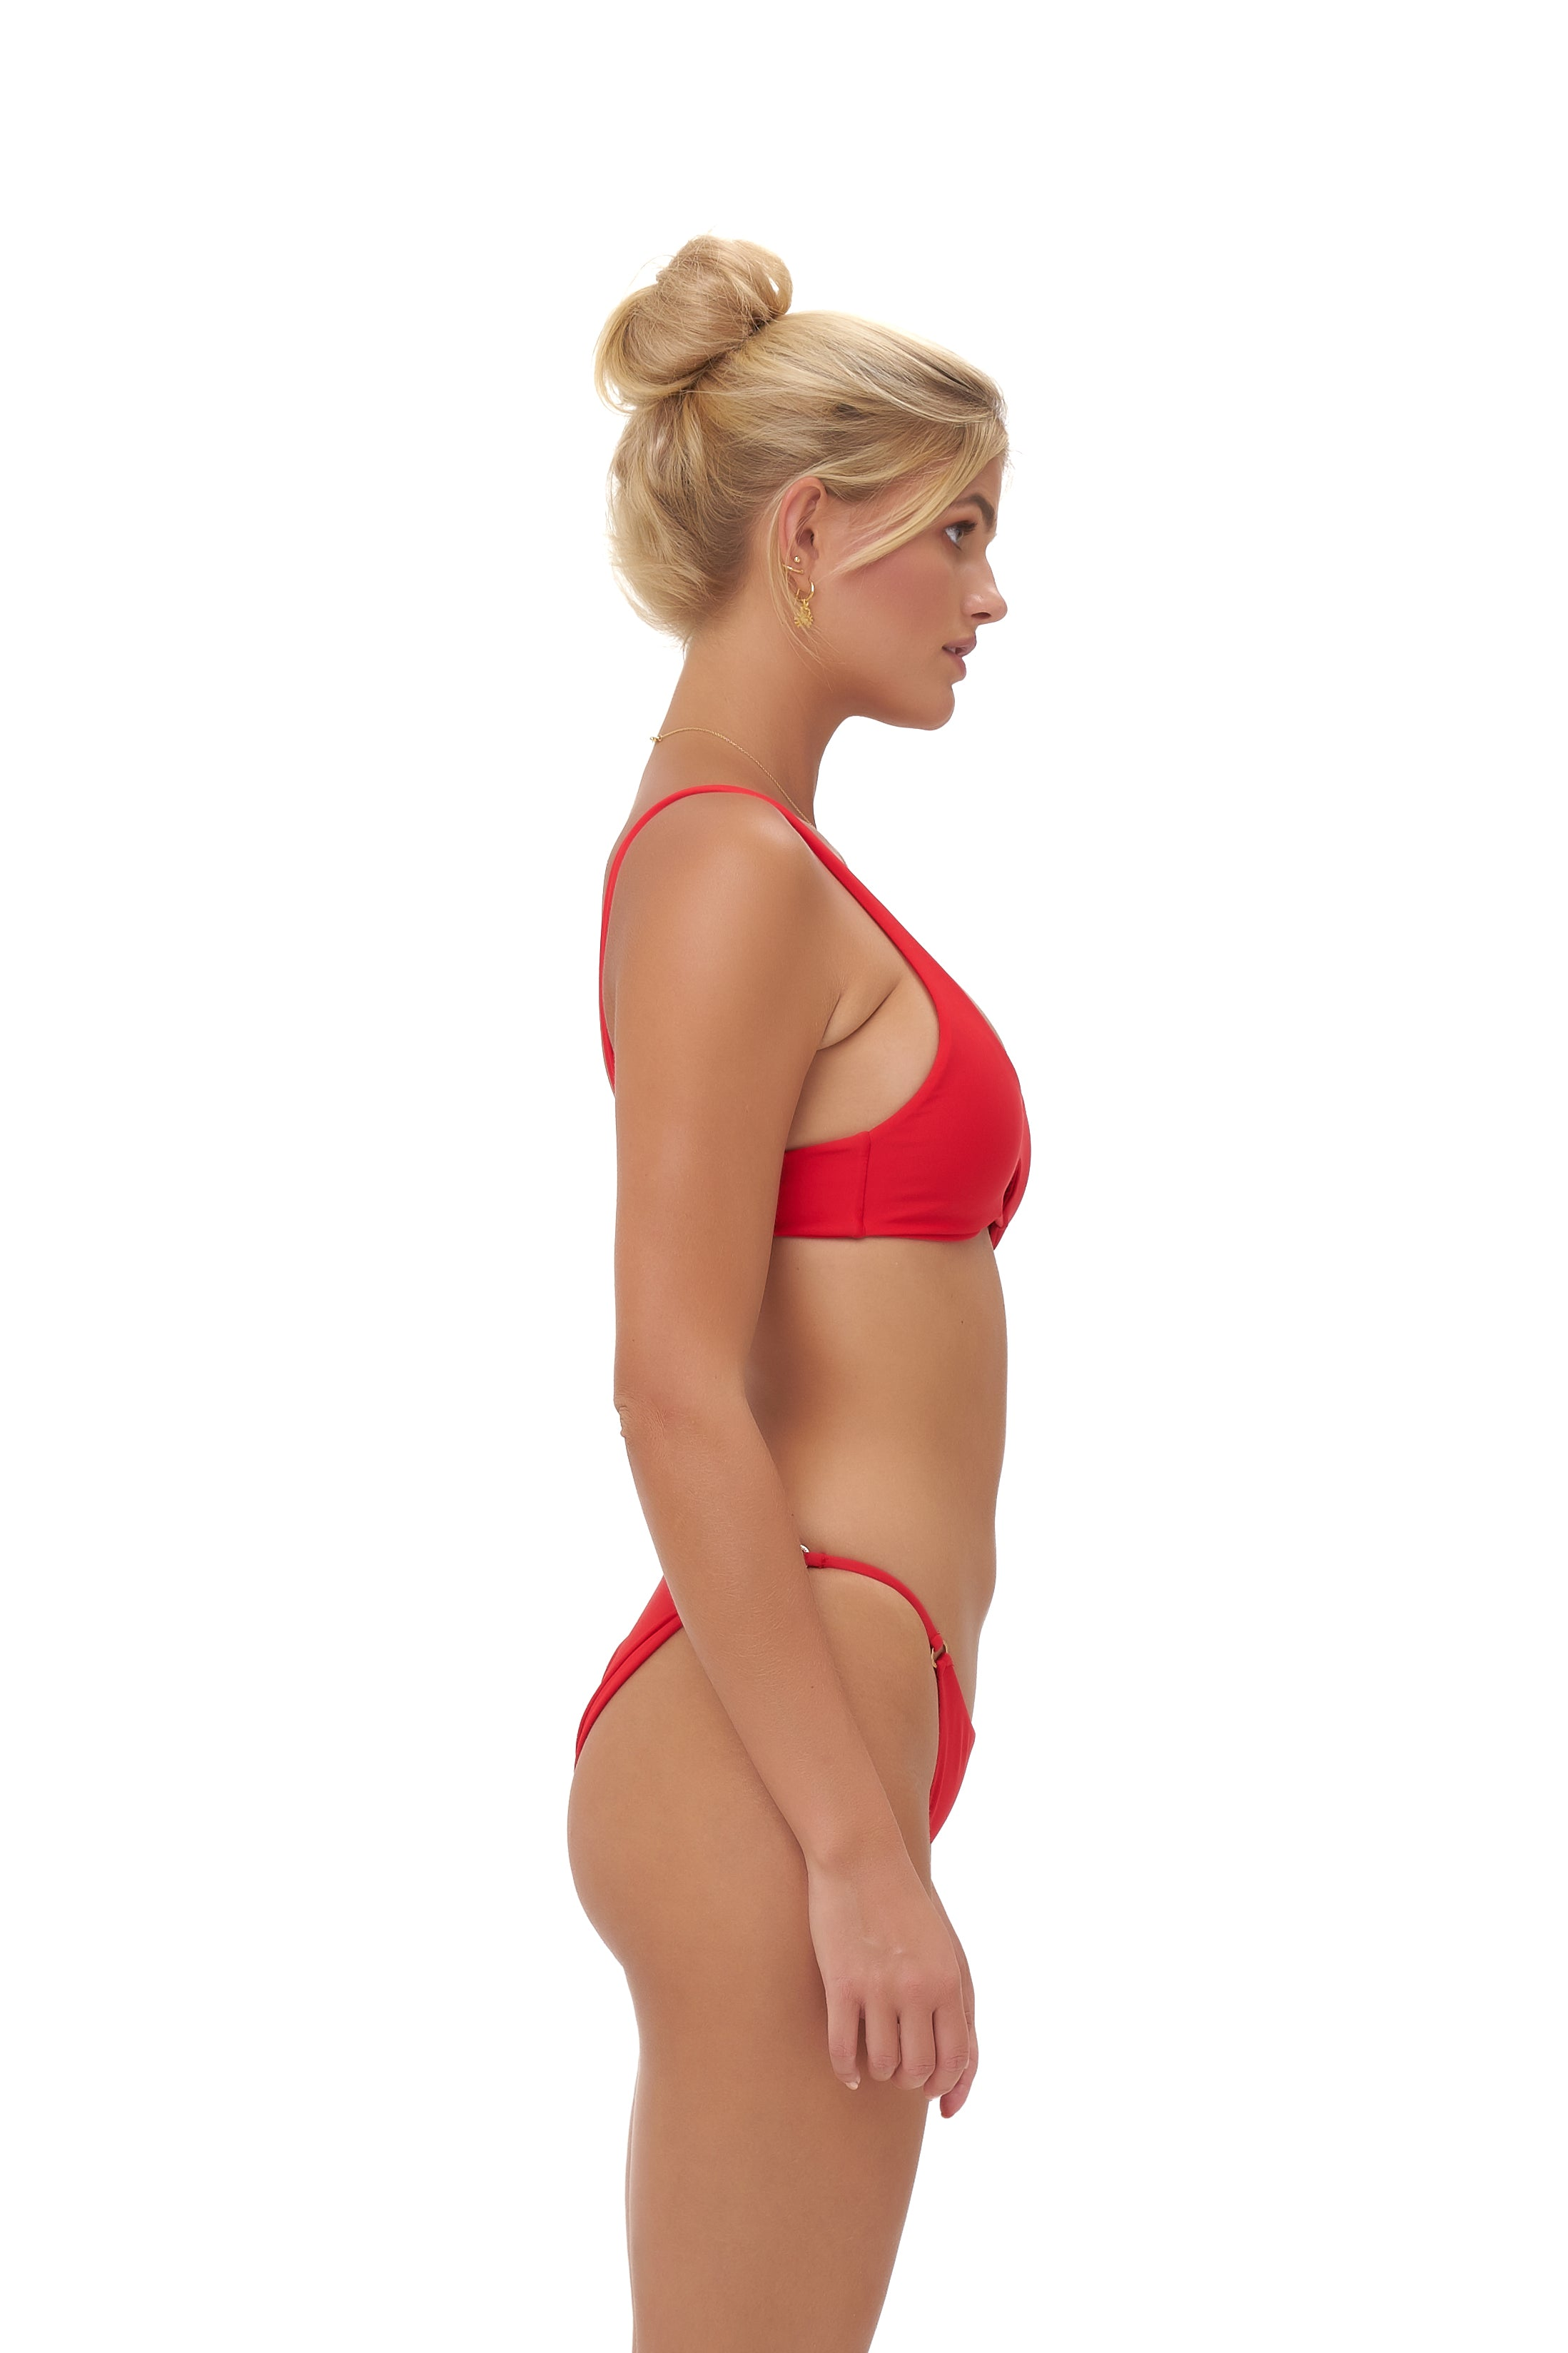 Storm Swimwear - Alicudi - Bikini Top in Scarlet